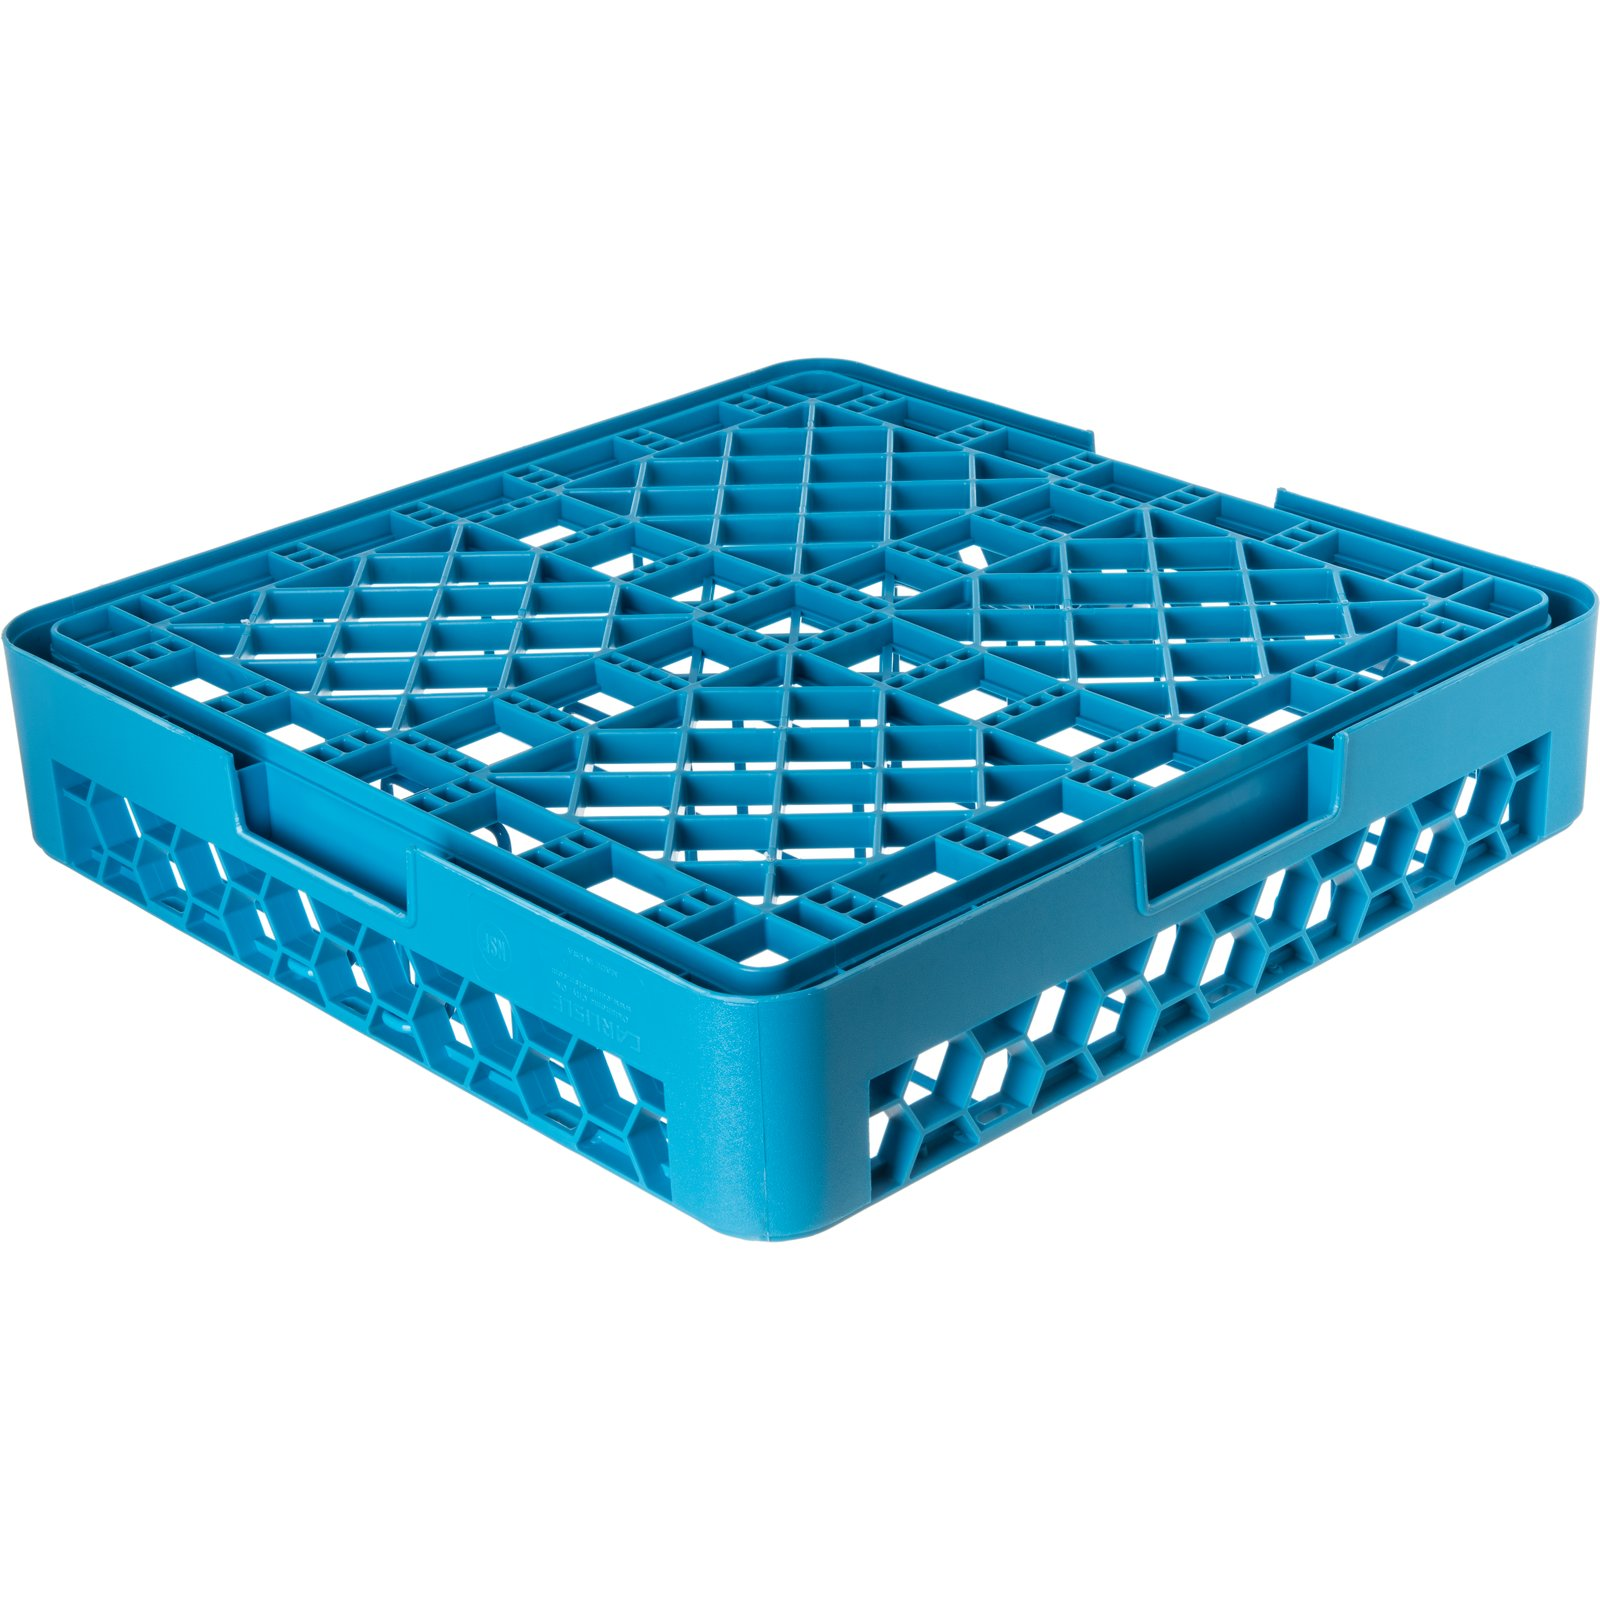 rpc14 opticlean plate cover rack carlisle blue carlisle foodservice products. Black Bedroom Furniture Sets. Home Design Ideas